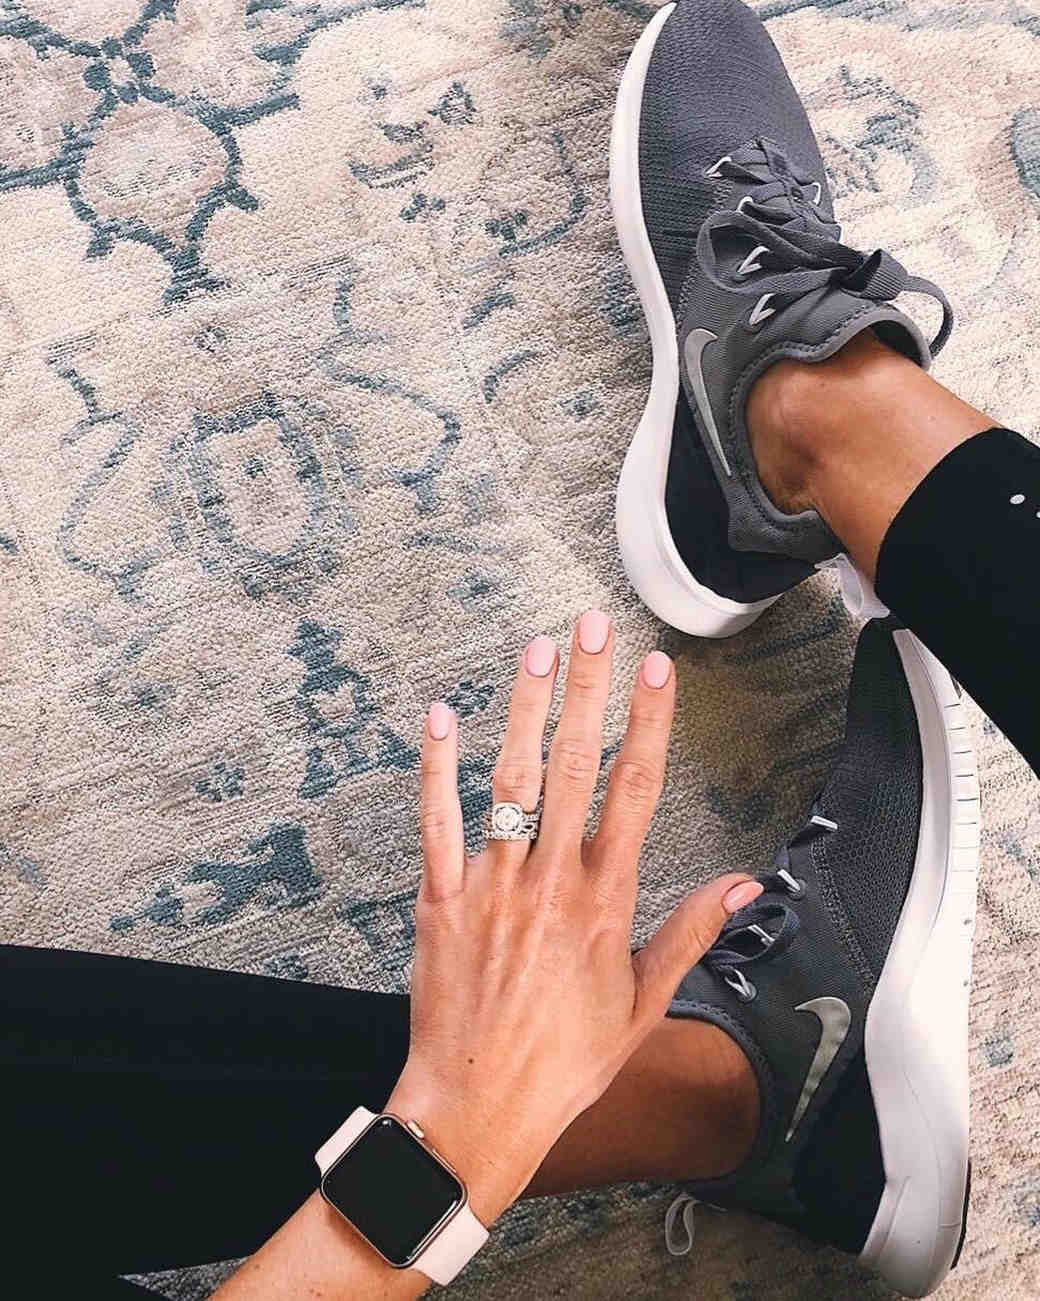 engagement ring selfie fitness attire